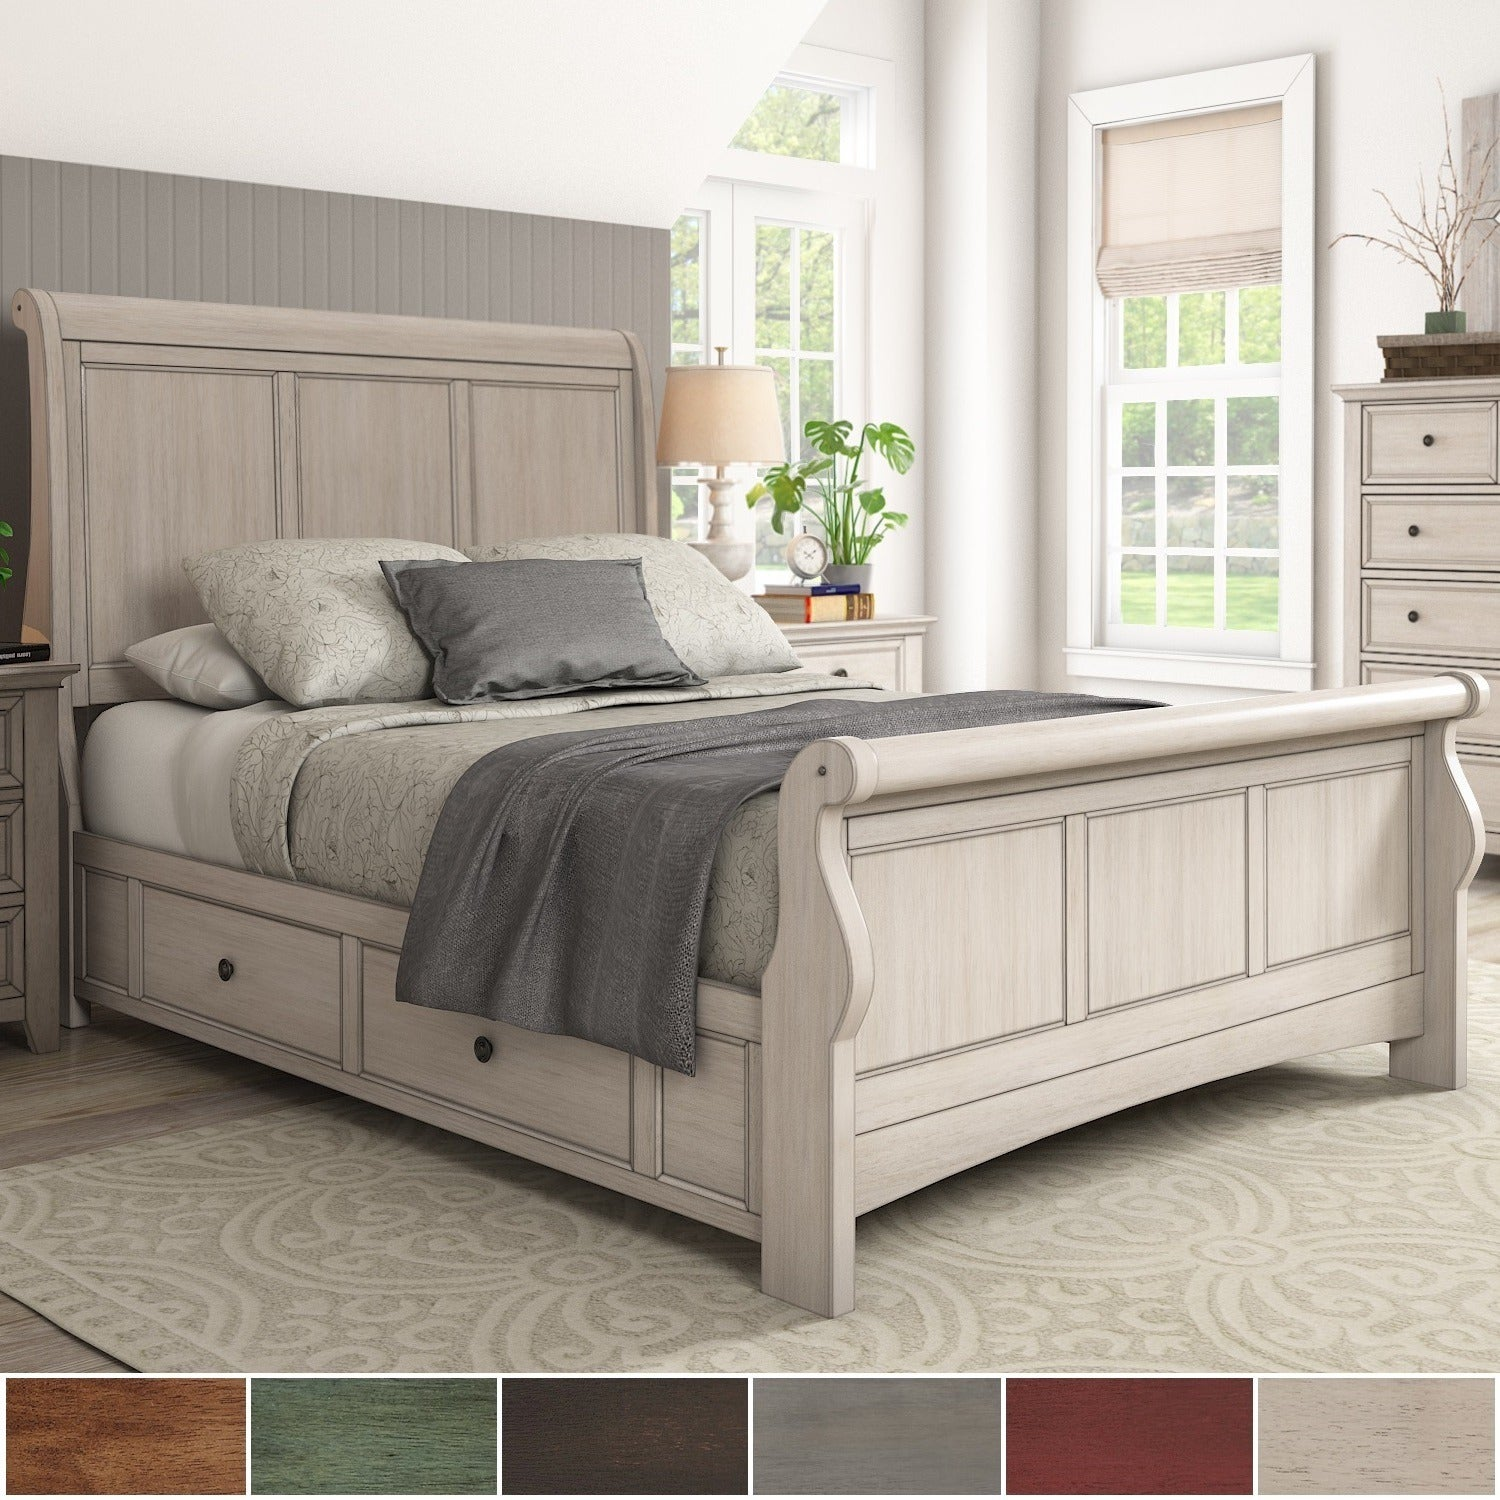 Ediline-Queen-Size-Wood-Sleigh-Storage-Platform-Bed-